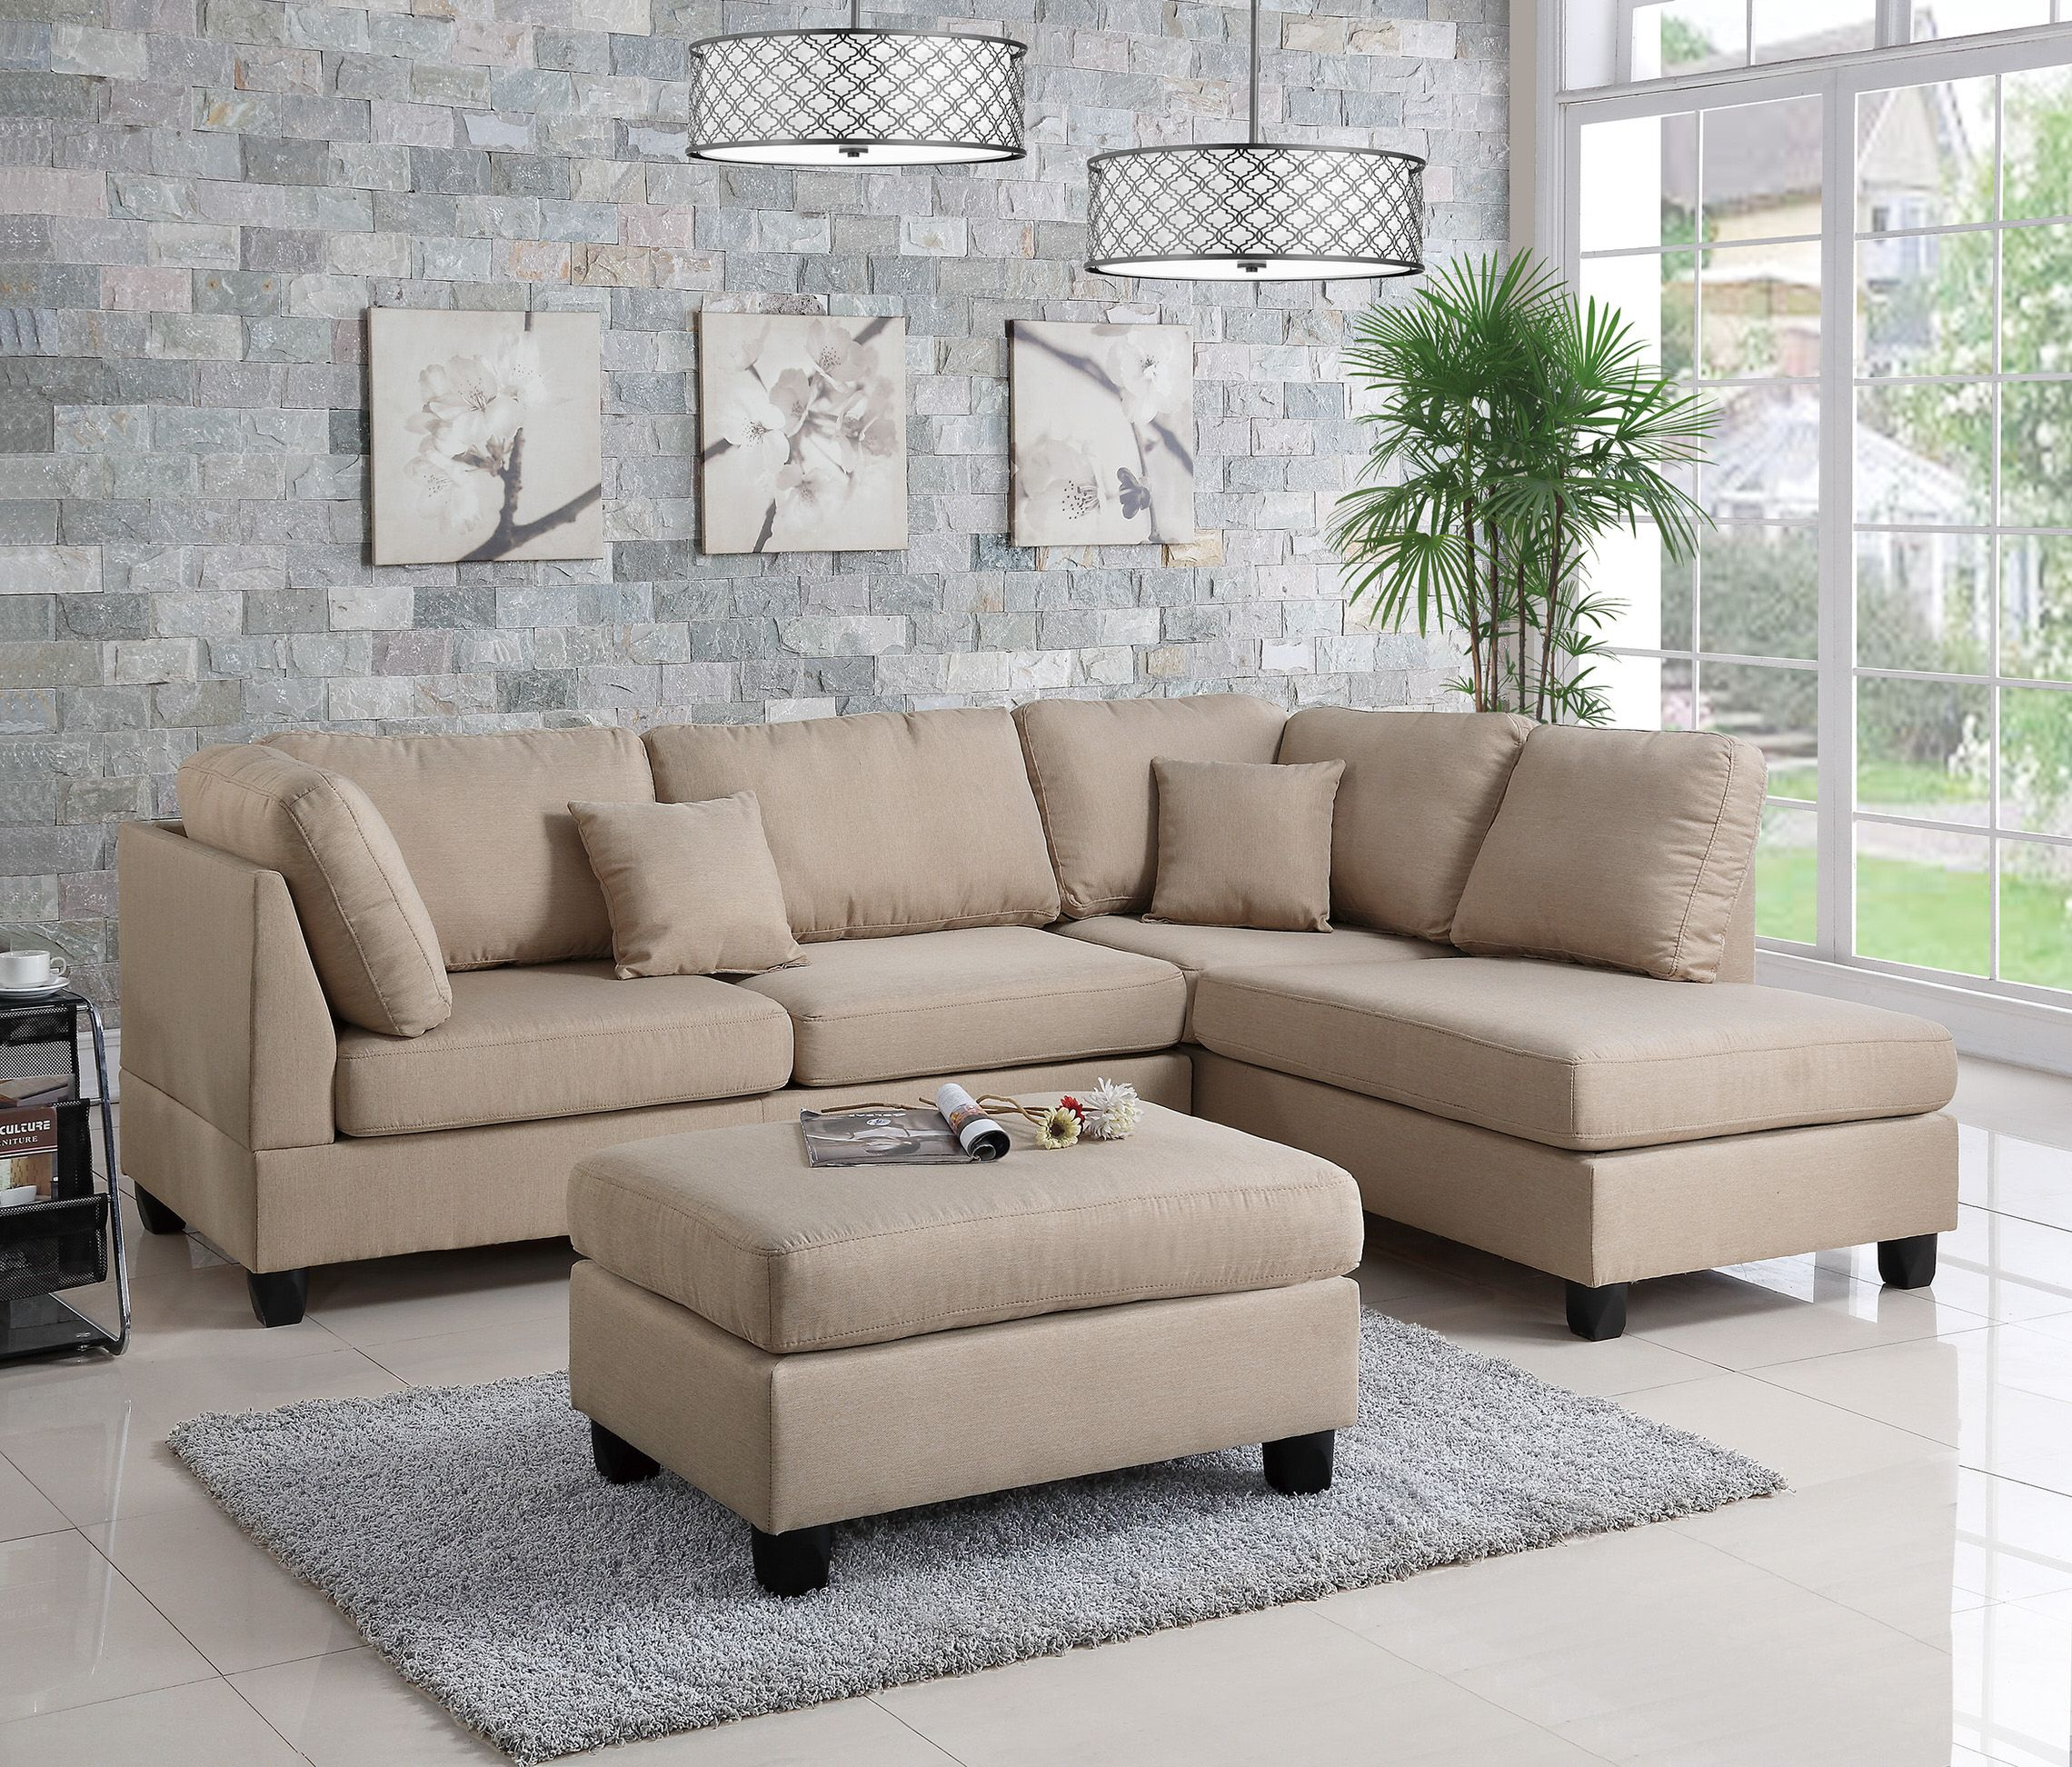 f7605 sand 2 pcs sectional sofa set by poundex in 2019 big girl rh pinterest com